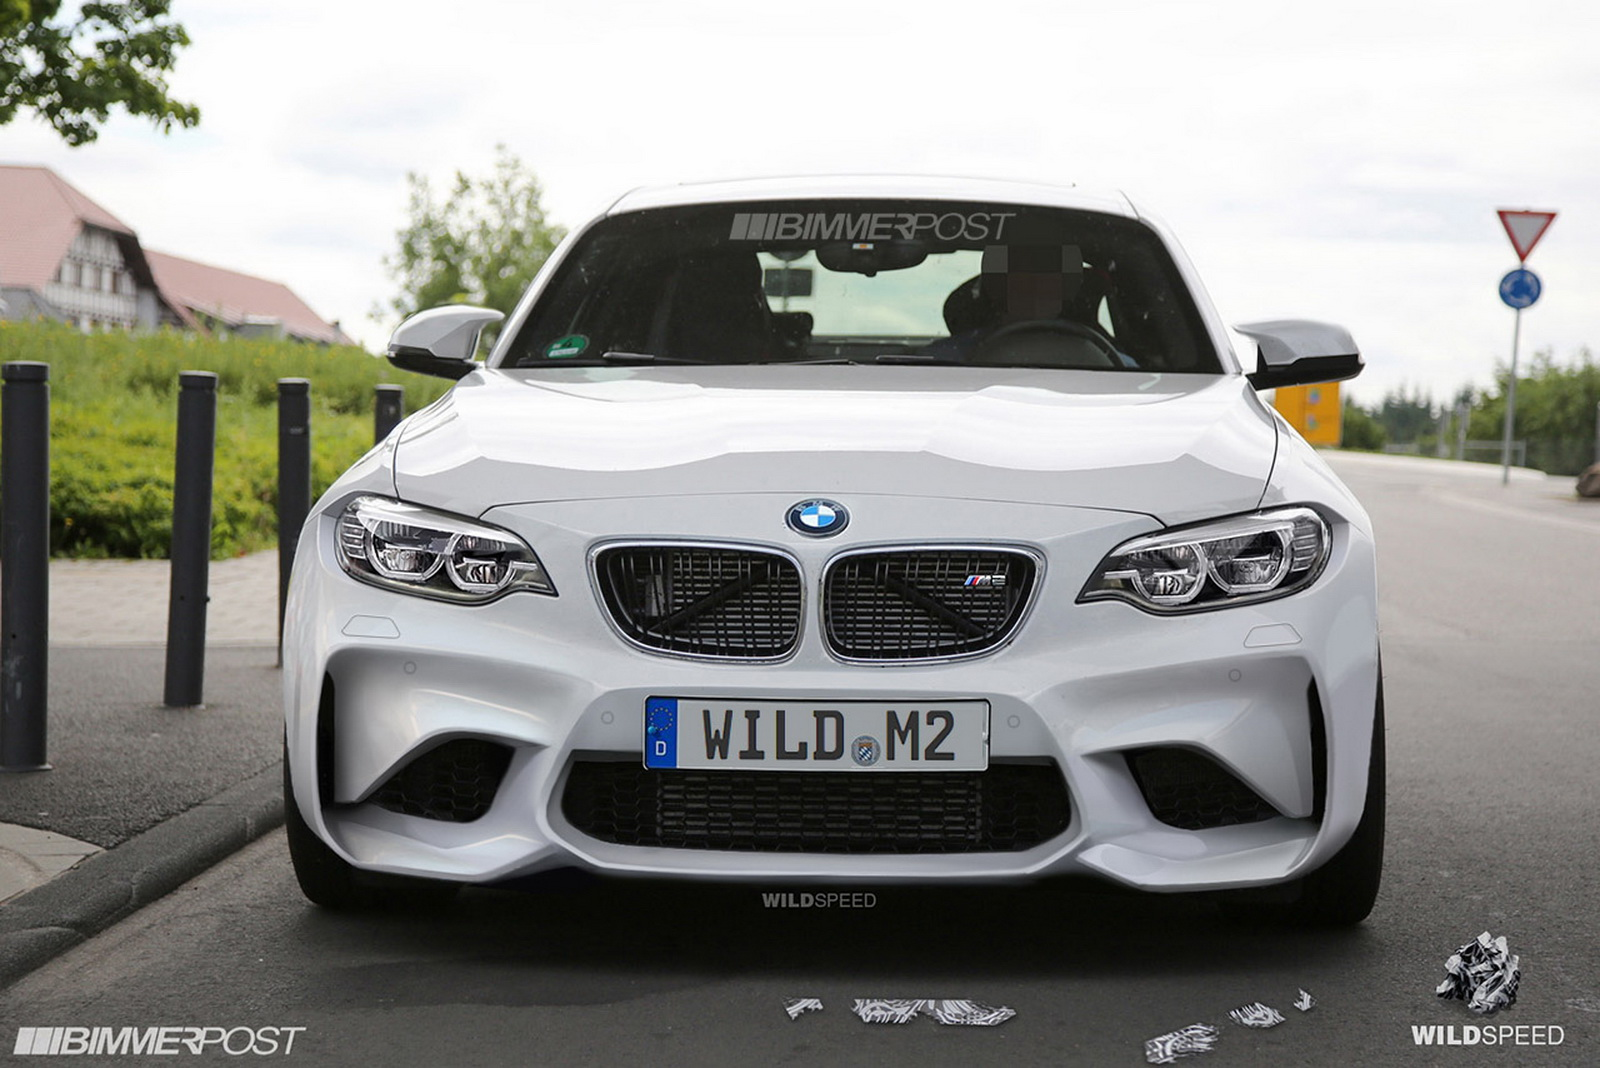 Fans Digitally Remove Camo Of A Bmw M2 Coupe Prototype Looks Like The Real Thing Carscoops